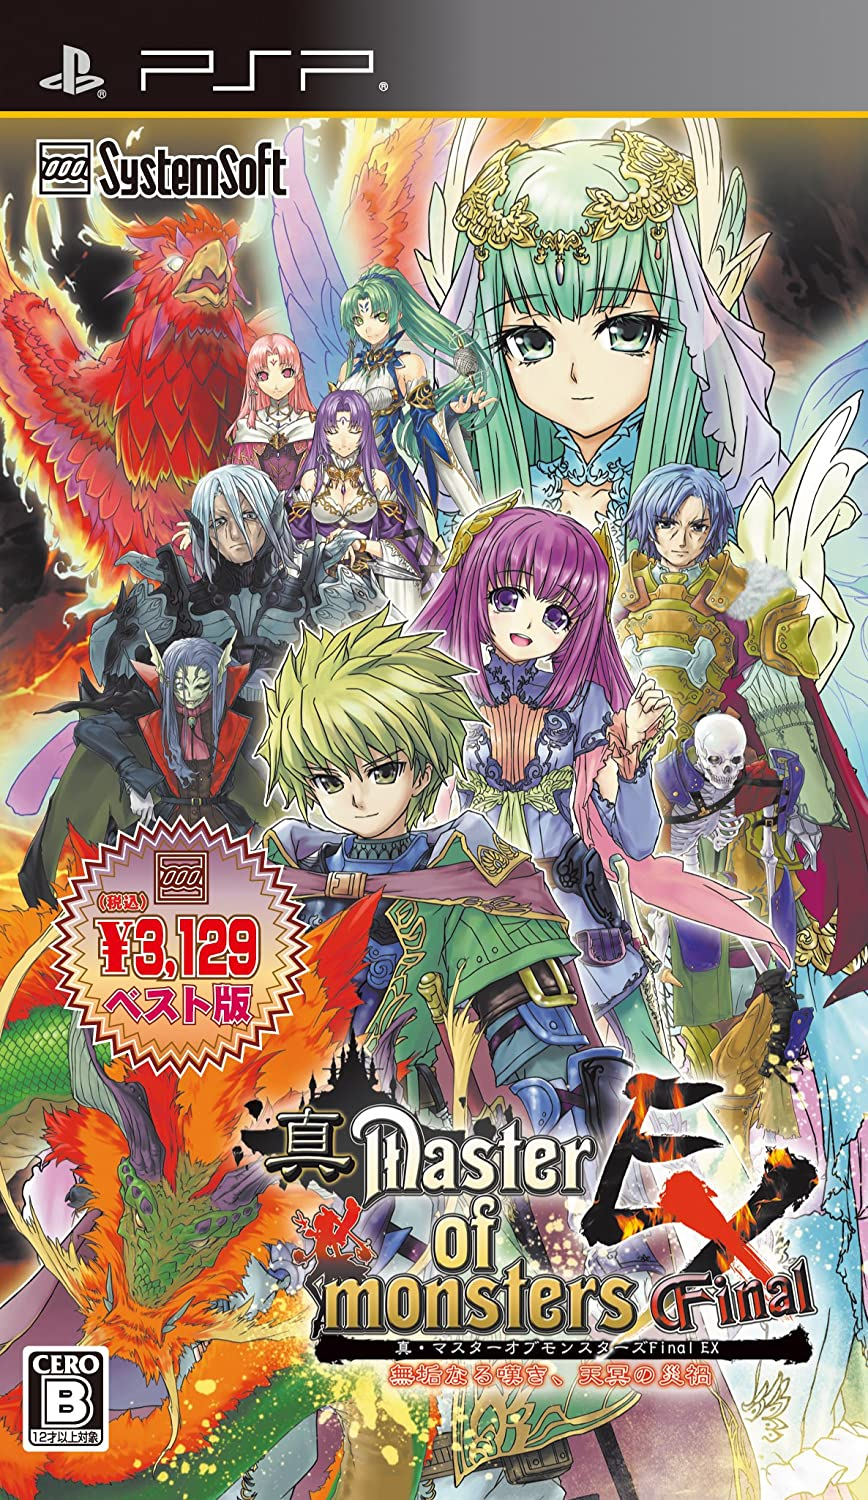 Shin Master of Monsters Final EX (System Soft Selection) [Japan Import]